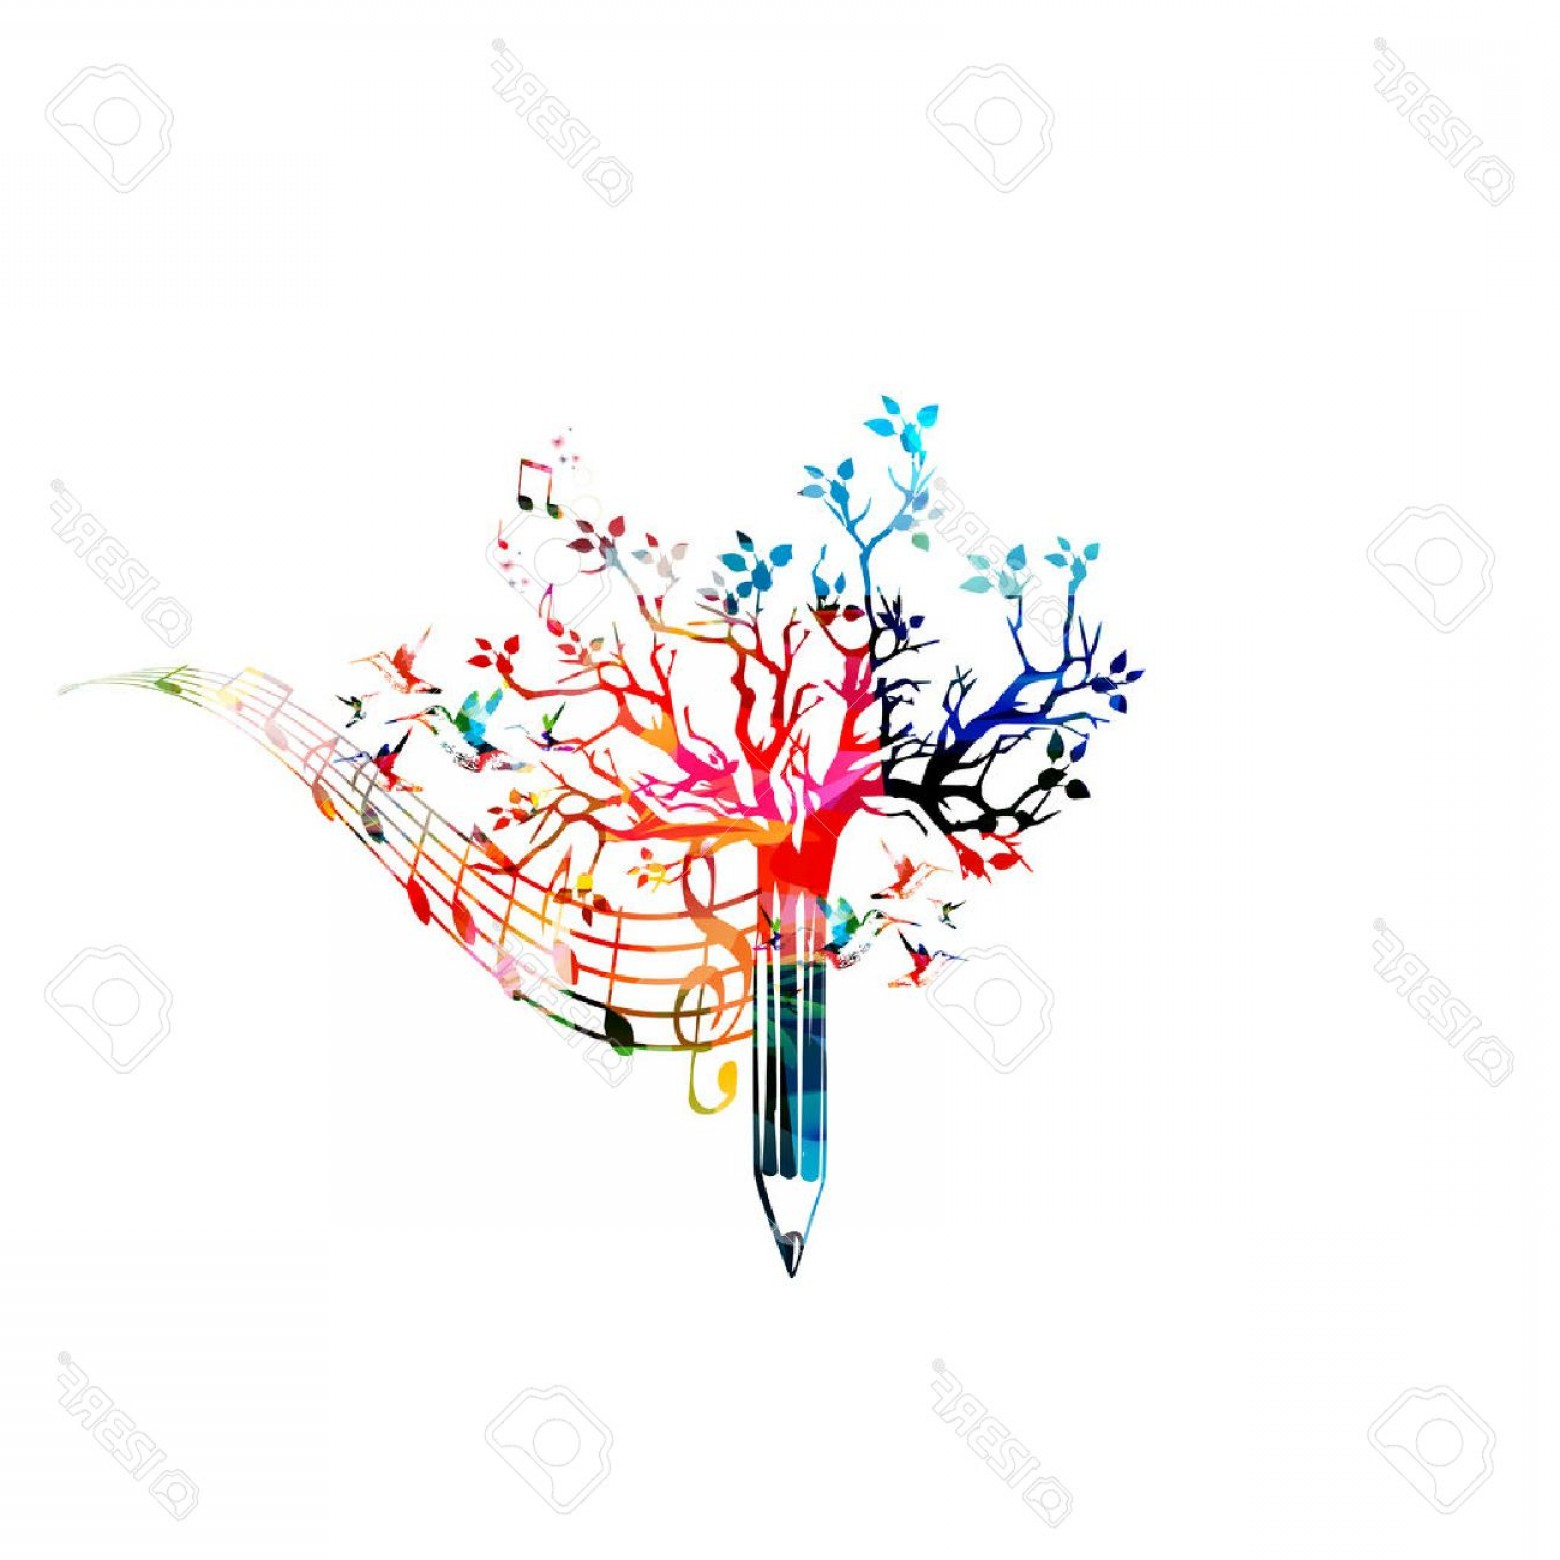 Music Vector Content: Photostock Vector Colorful Pencil Tree Vector Illustration With Music Notes Design For Creative Writing Storytelling B